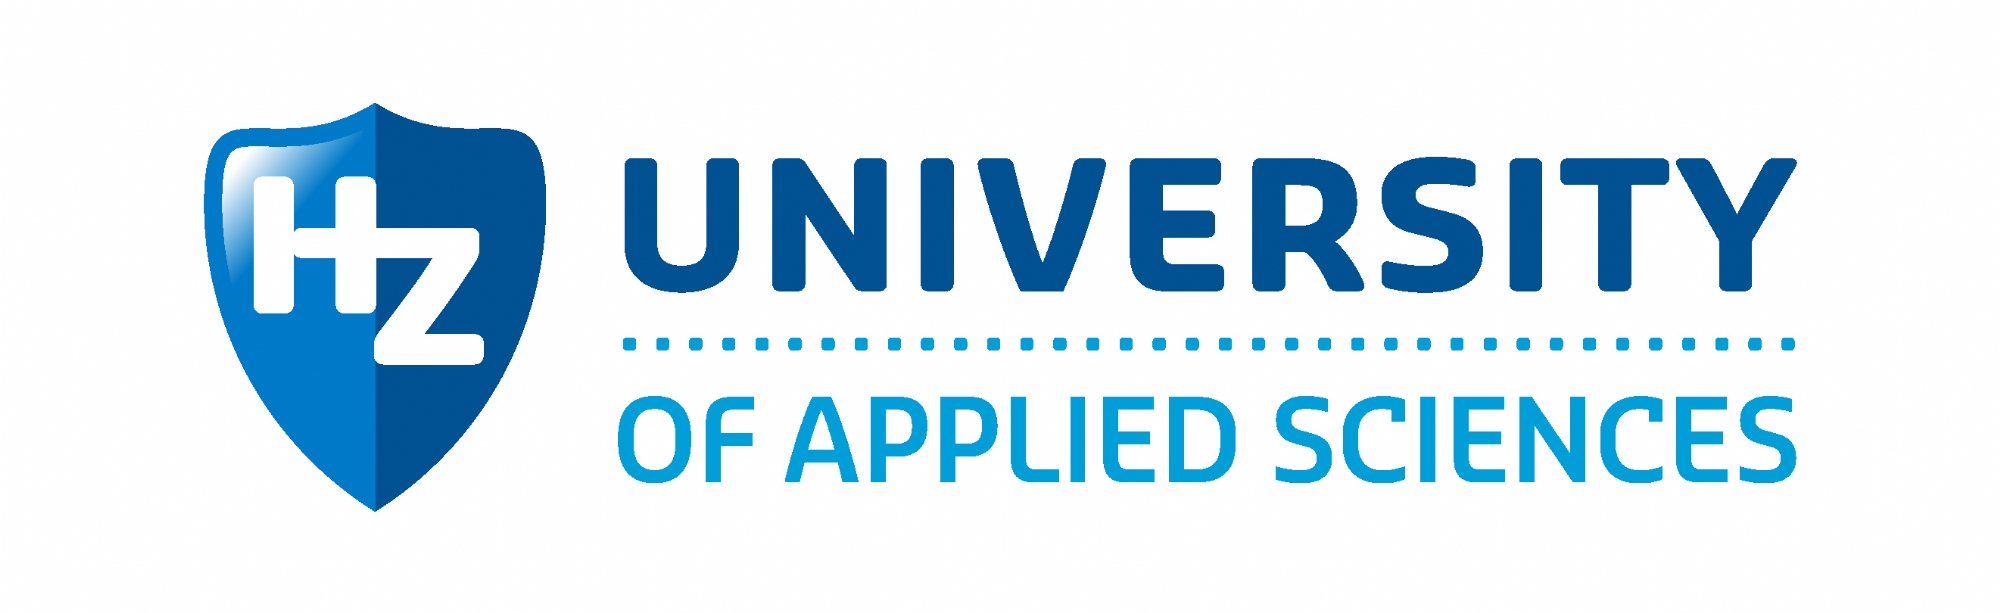 HZ University of Applied Sciences Middelburg